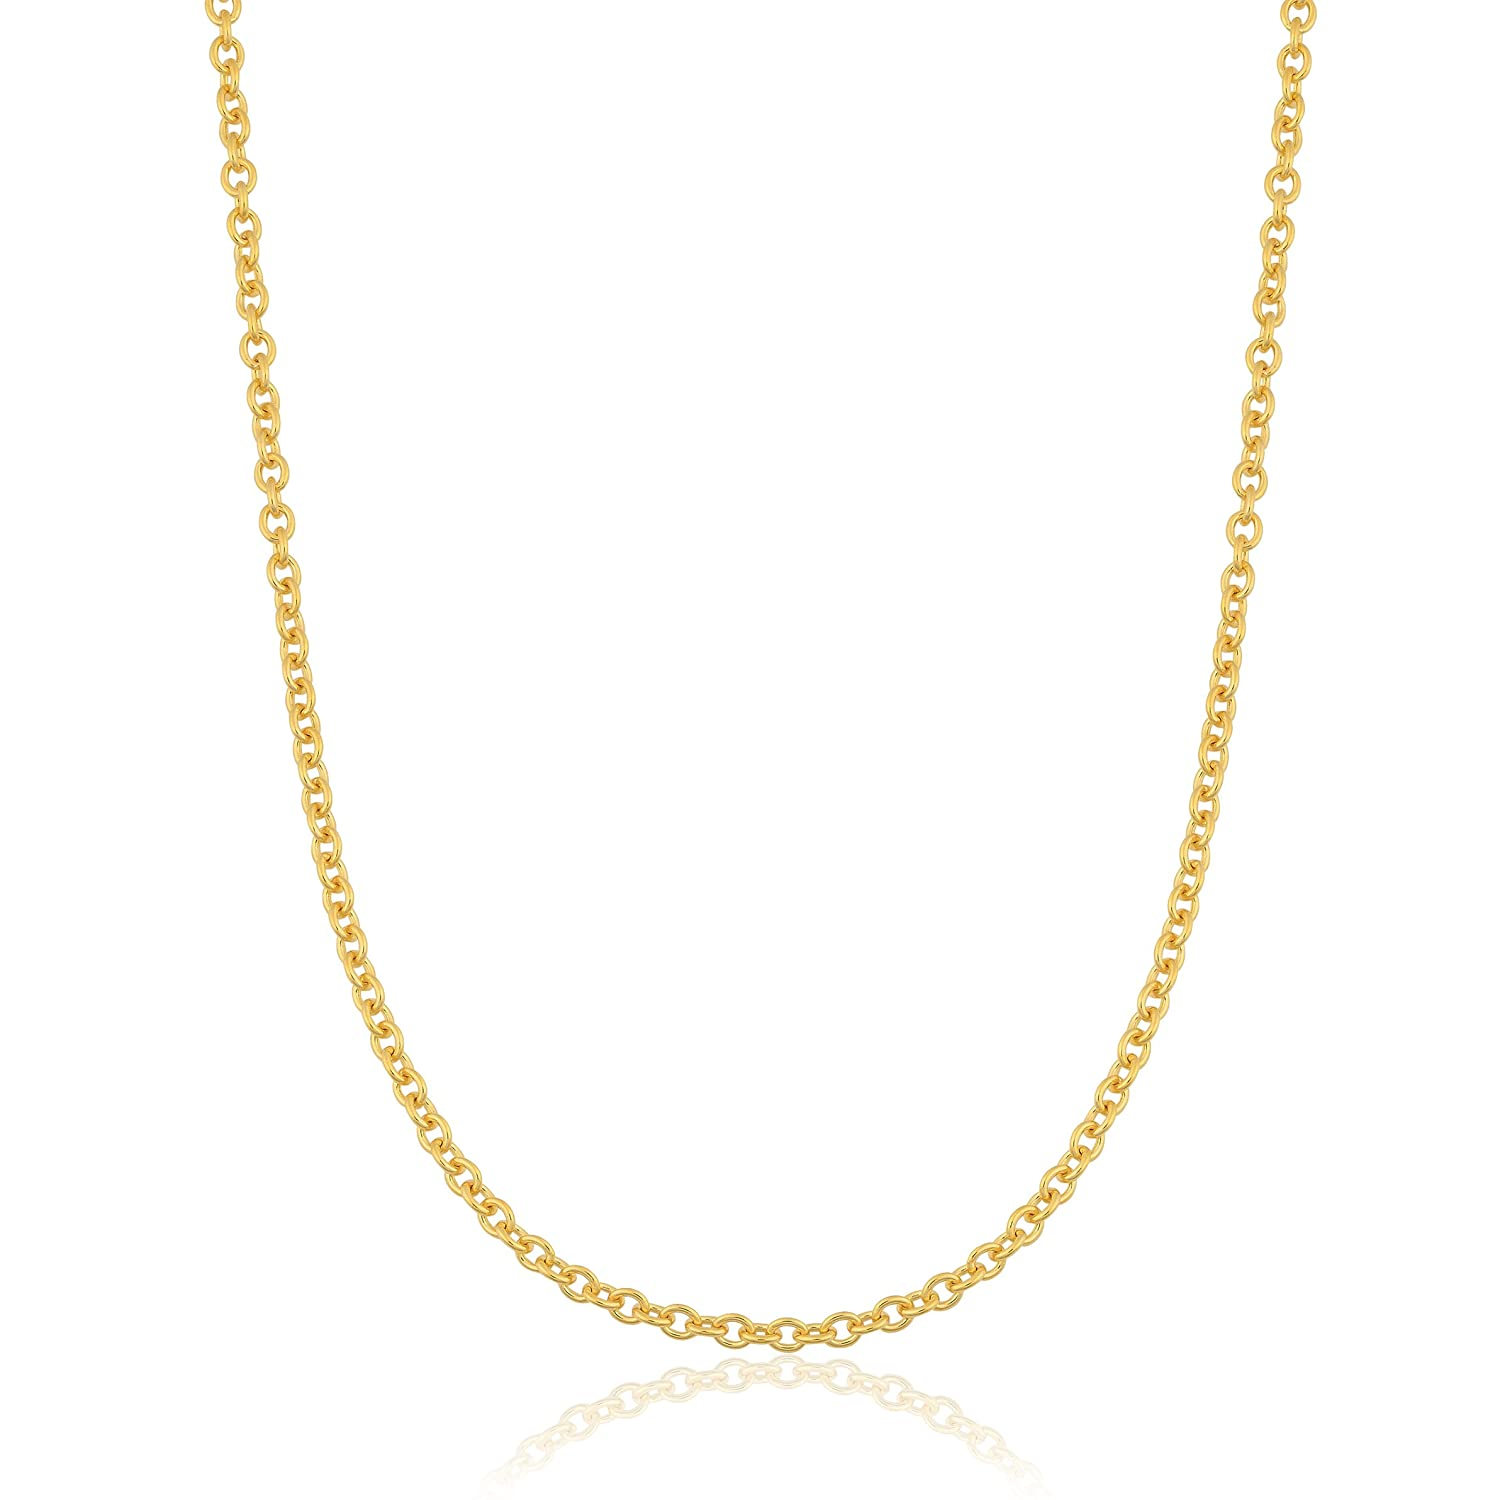 16, 18, 20, 22, 24 or 30 inch Kooljewelry 14k Yellow Gold Filled 1.1 mm Open Cable Chain Necklace